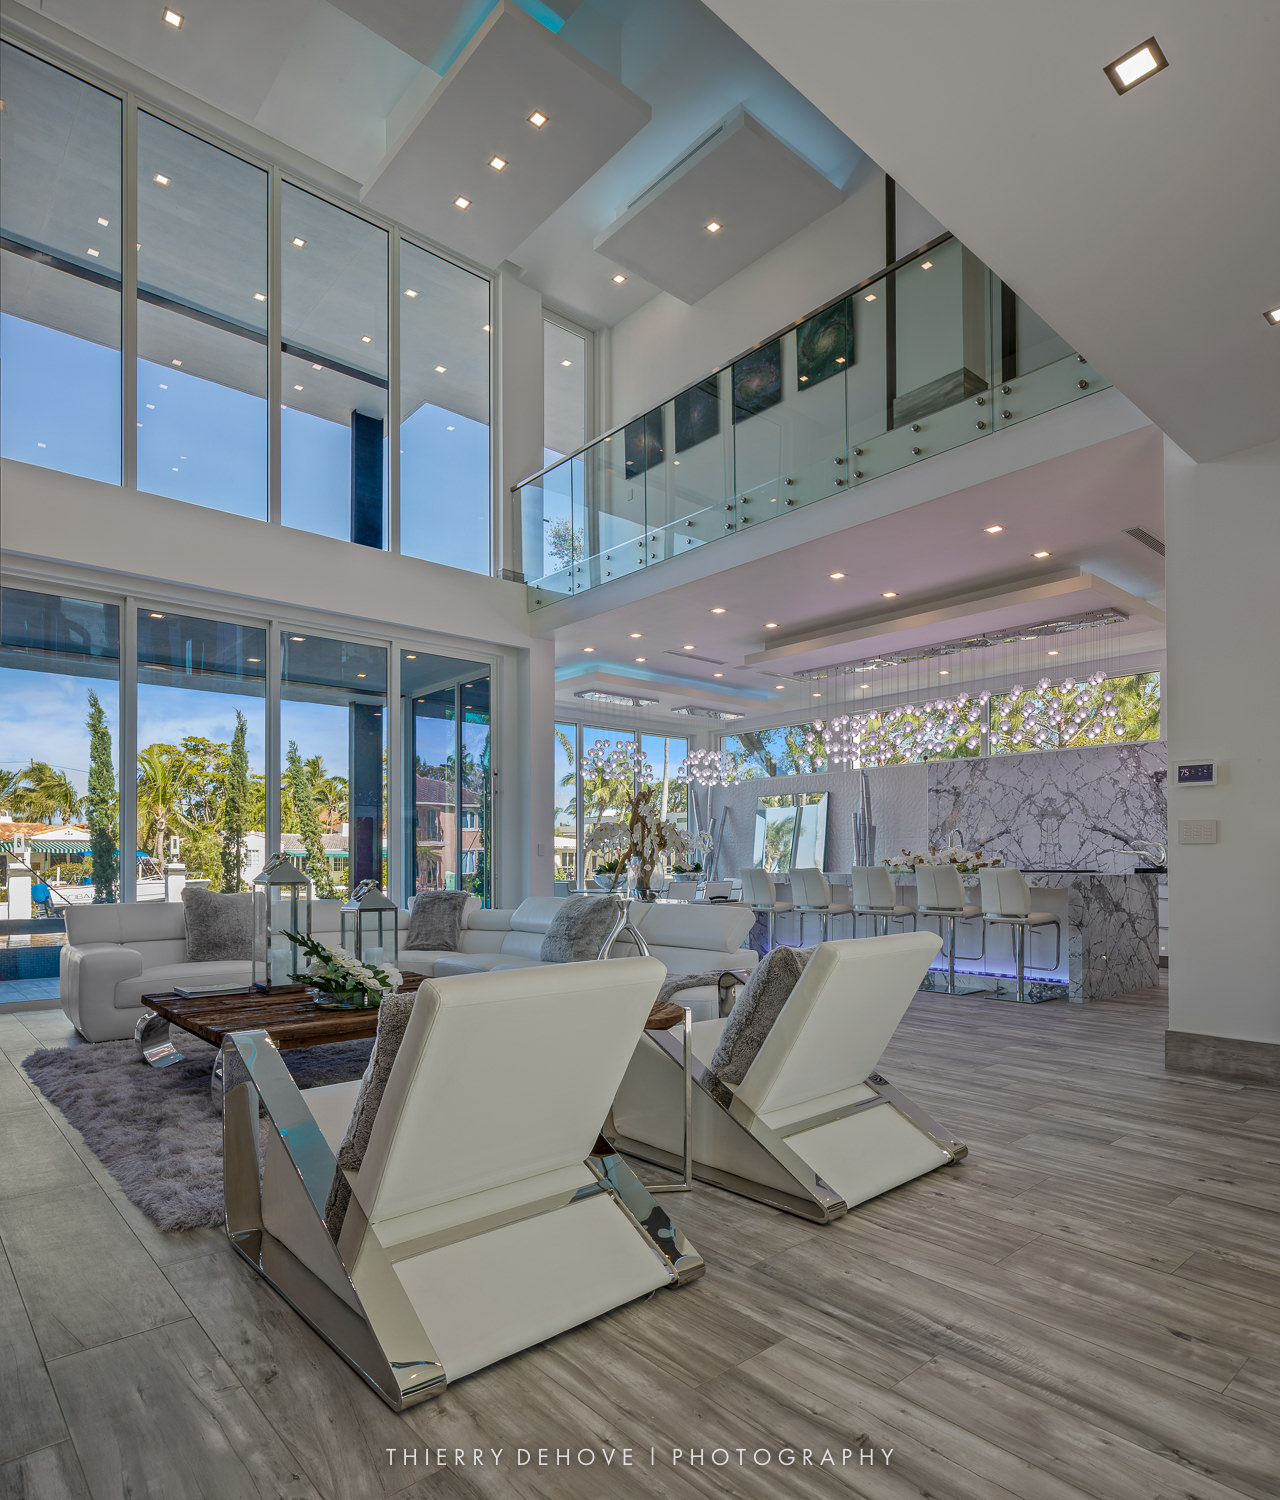 Charming Home Interior Design Photography In Fort Lauderdale